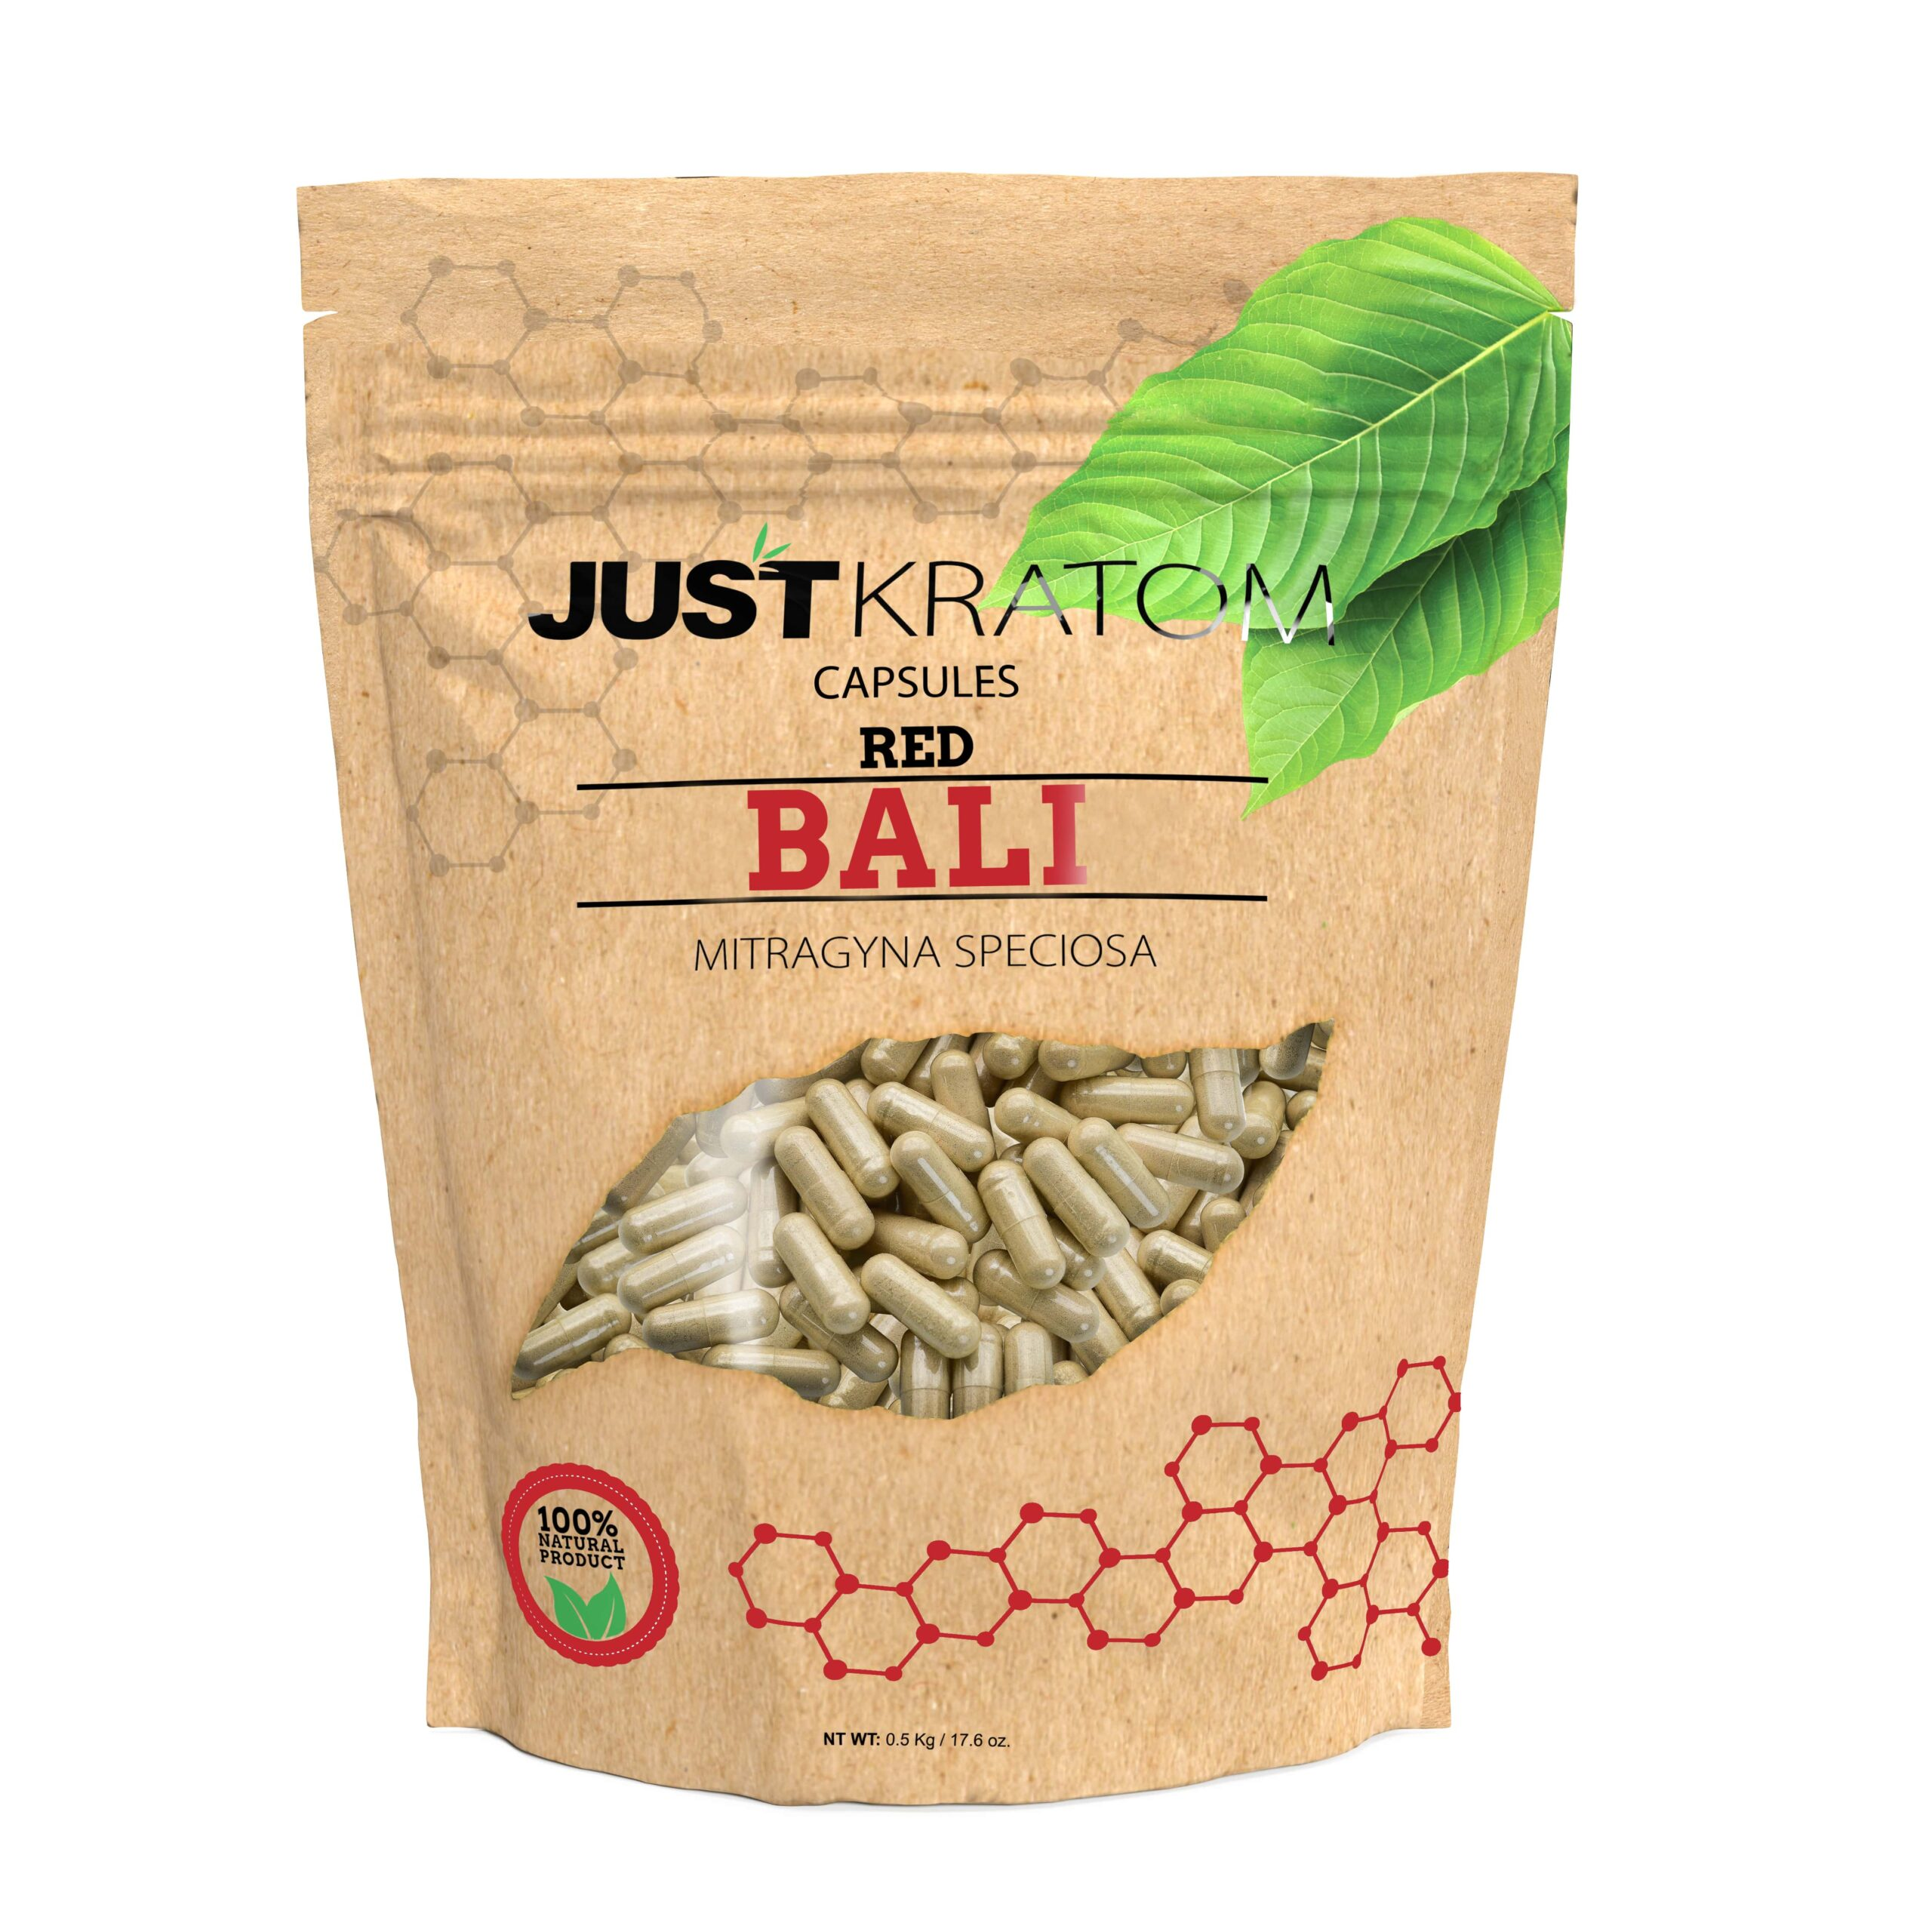 Where To Buy Kratom In Georgia